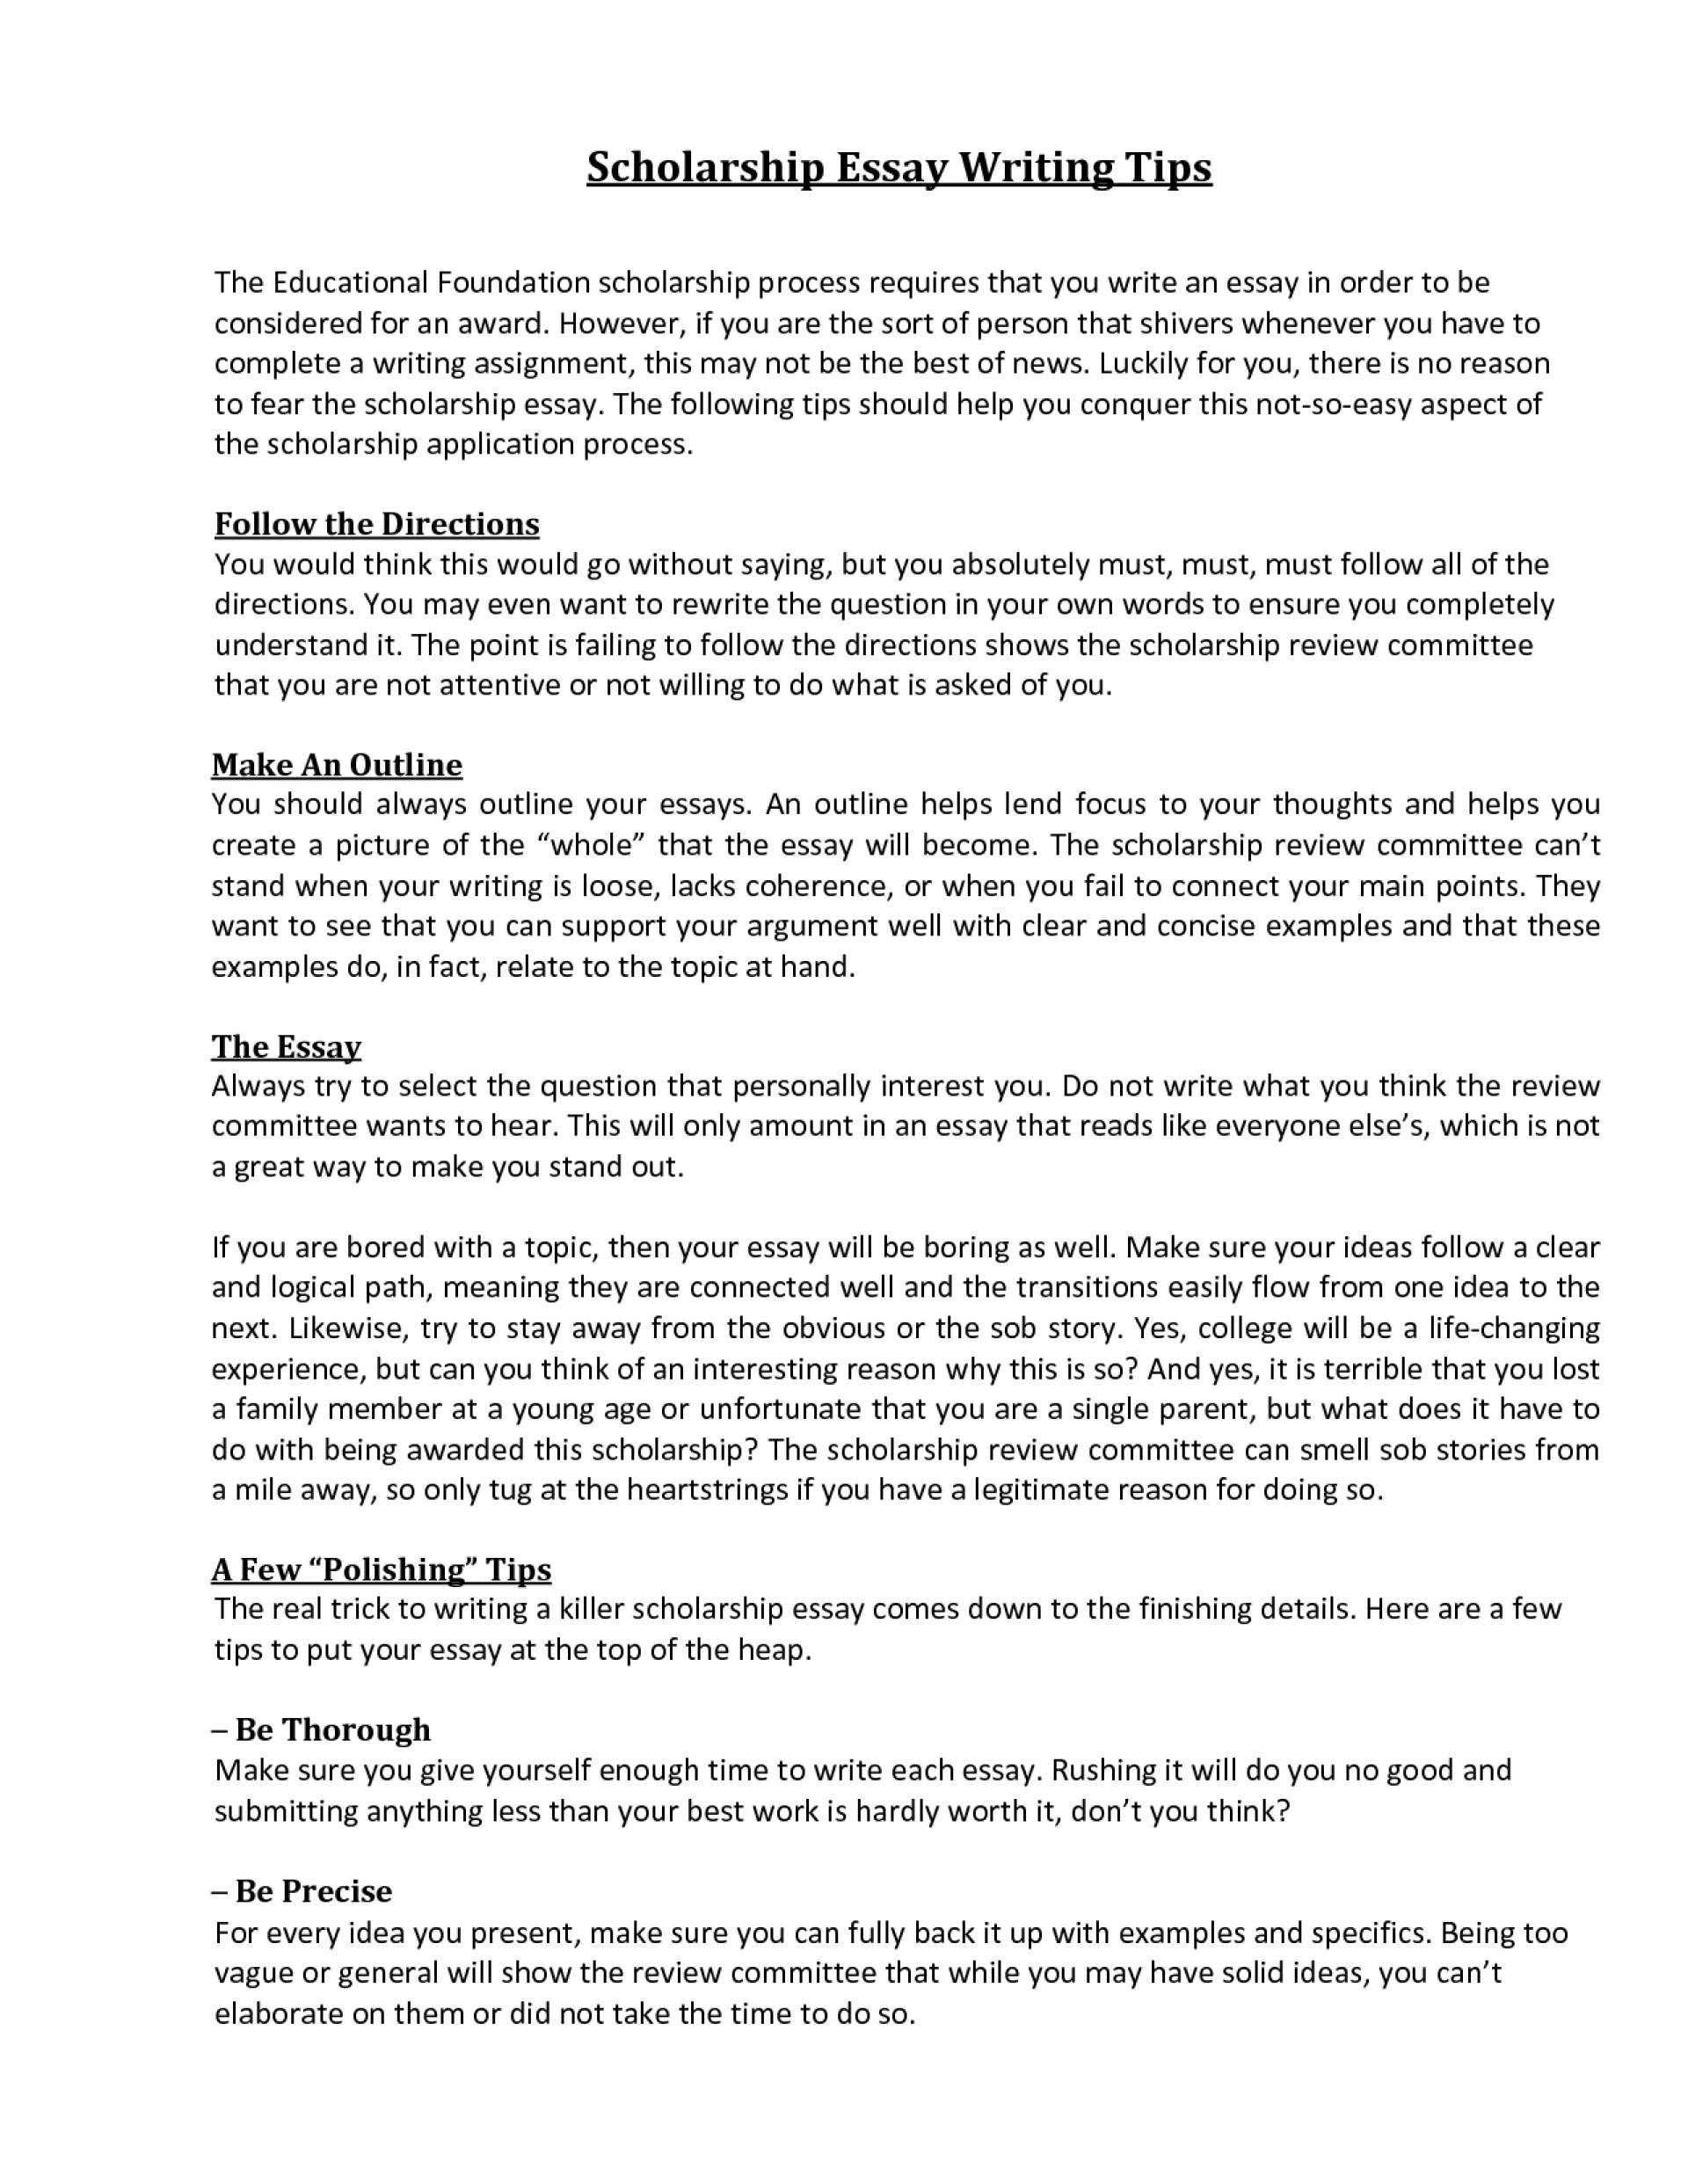 006 Essay Example Ziolxujgwq Scholarship Stunning Template Structure Format Examples Guidelines 1920